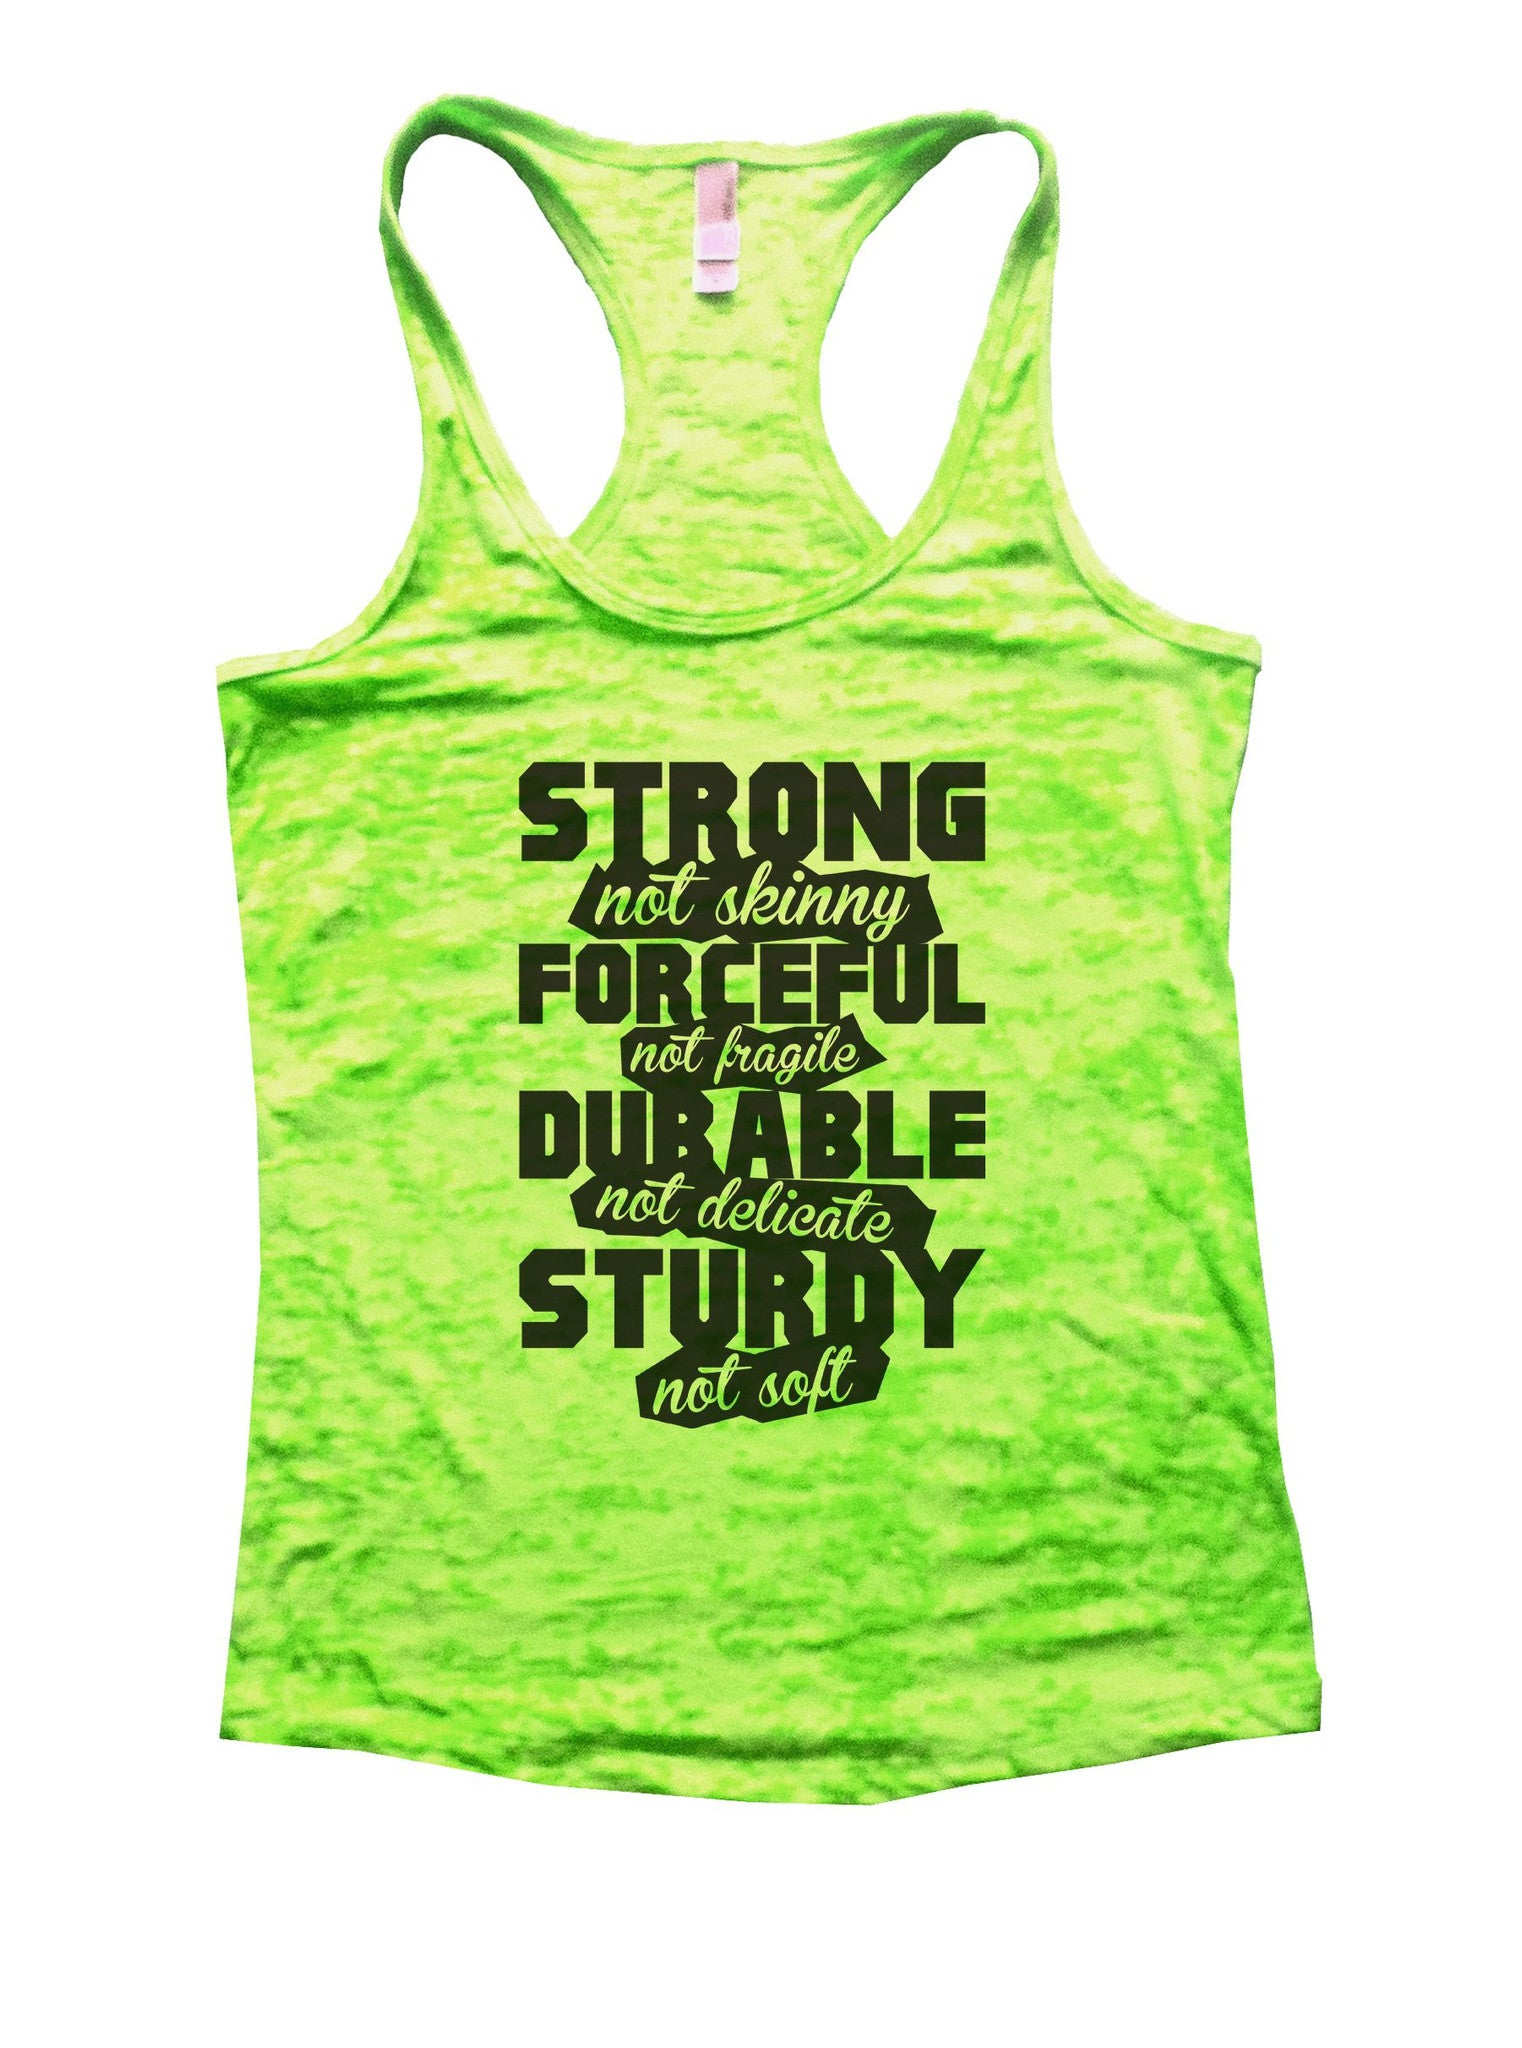 Strong Not Skinny Forceful Not Fragile Durable Not Delicate Sturdy Not Soft Burnout Tank Top By BurnoutTankTops.com - 845 - Funny Shirts Tank Tops Burnouts and Triblends  - 2